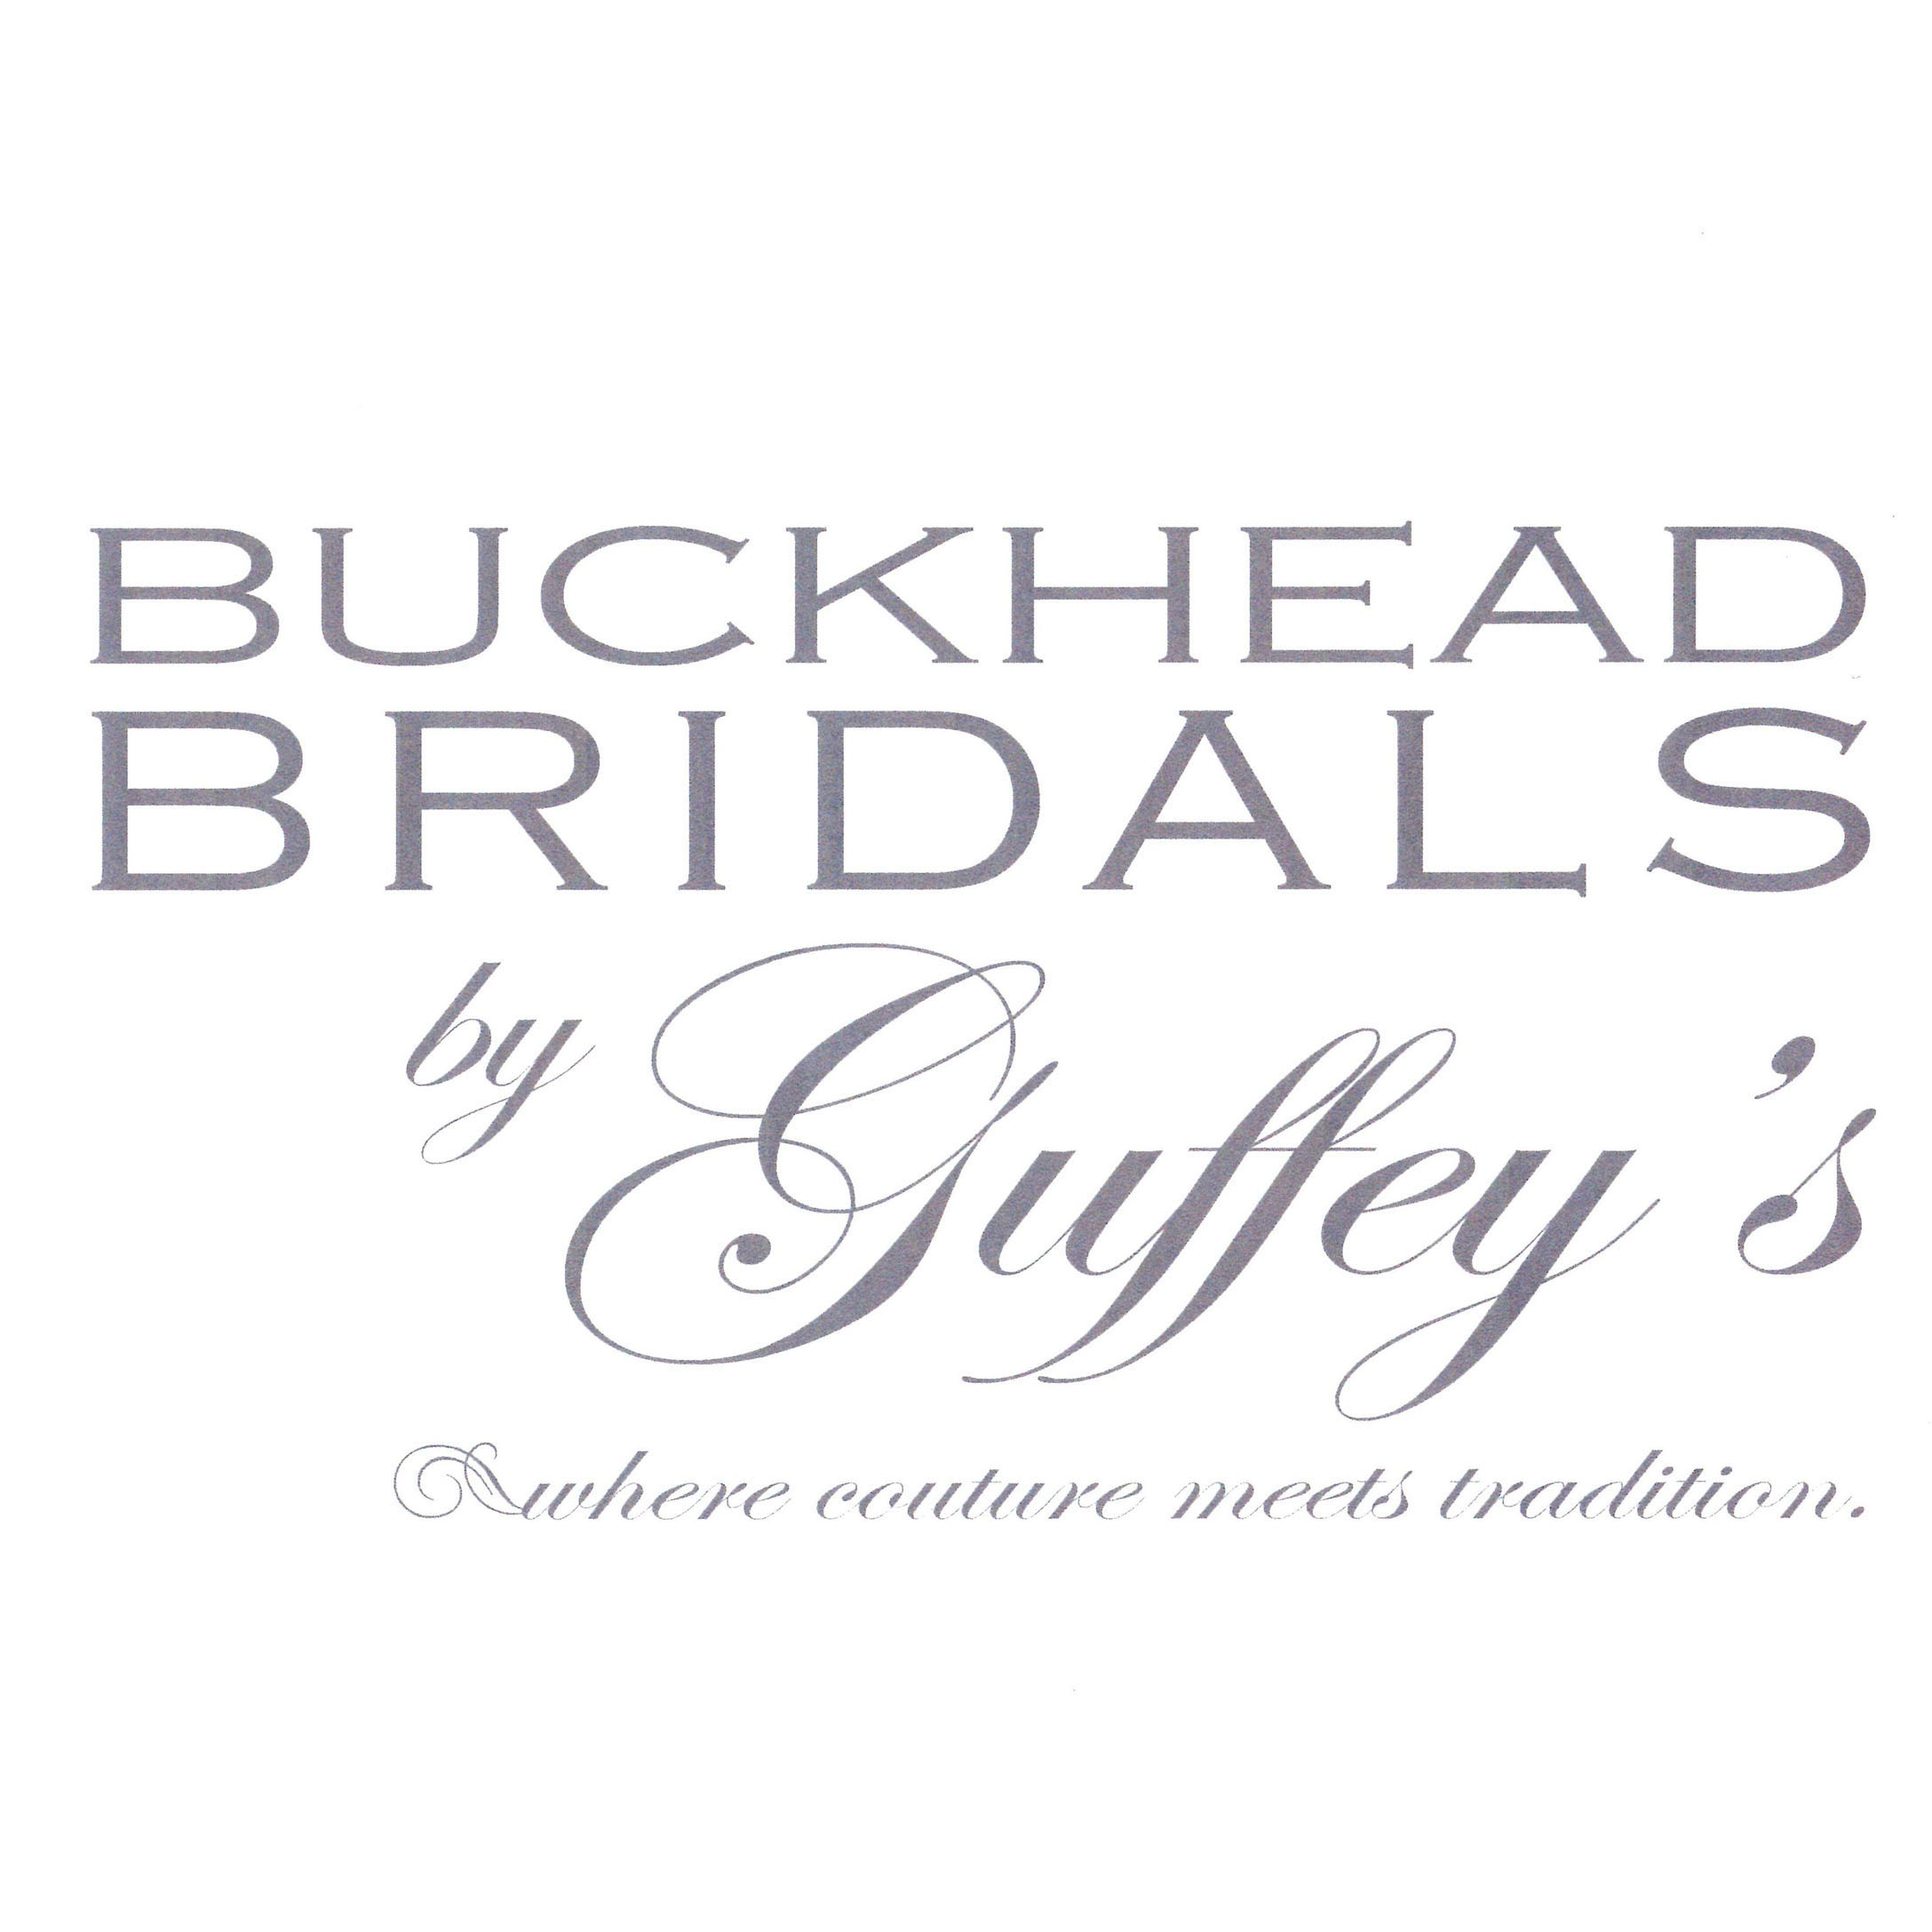 Buckhead Bridals by Guffeys